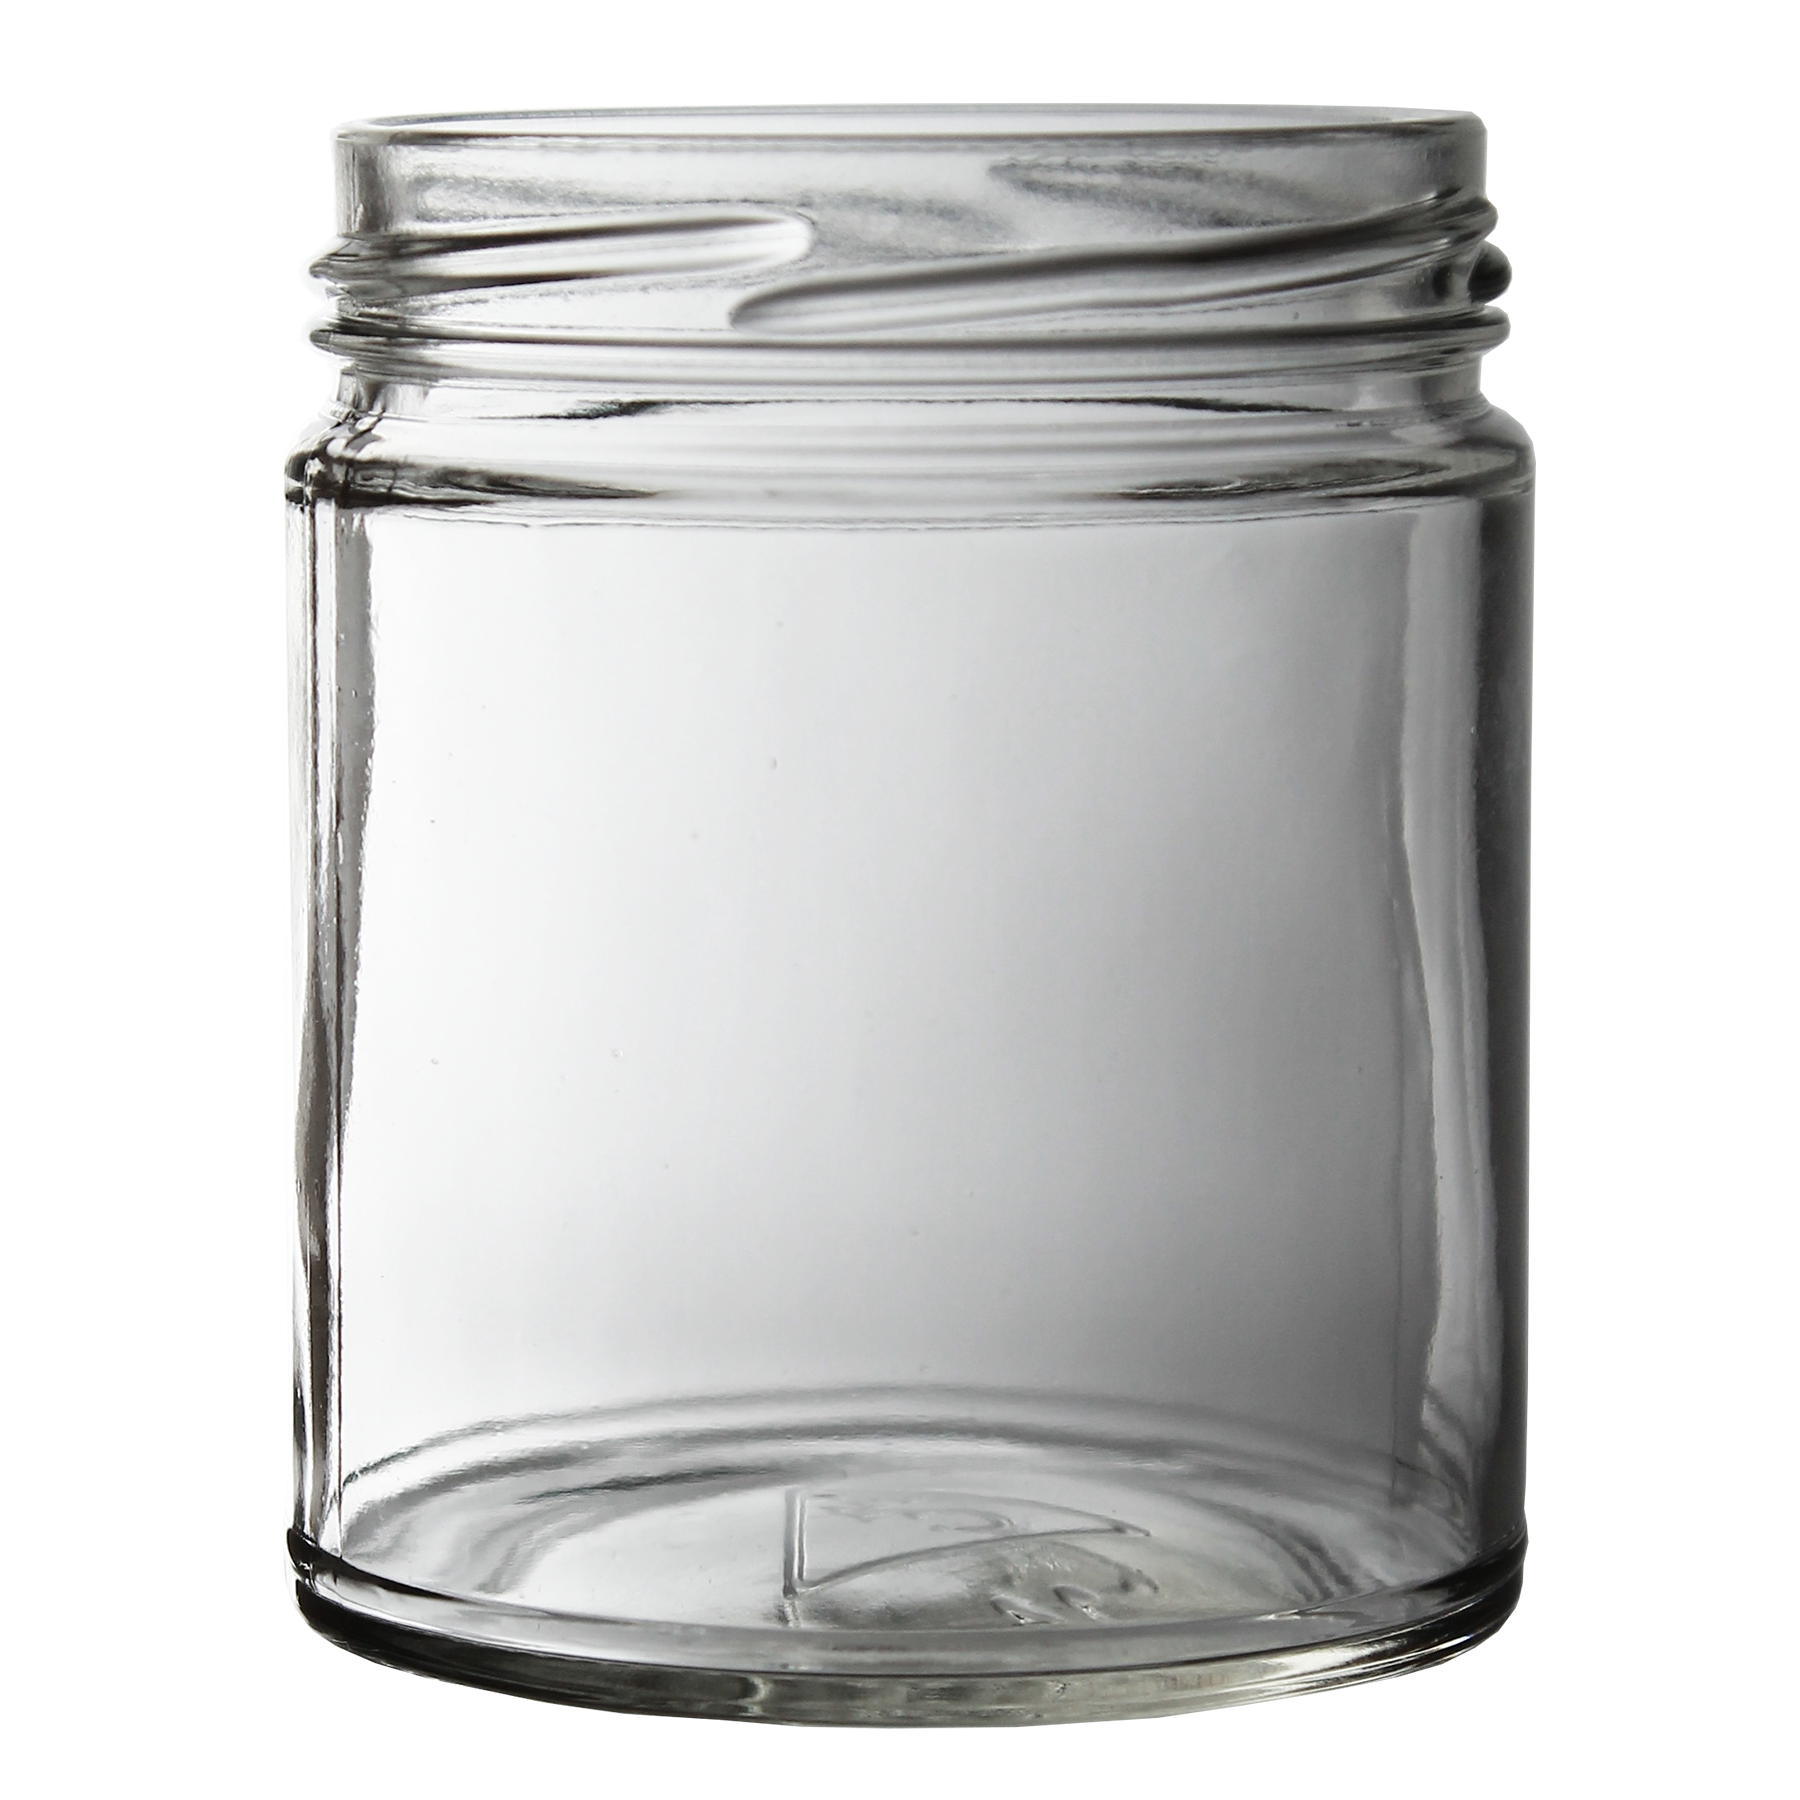 Png glass images pluspng. Jar transparent image free library